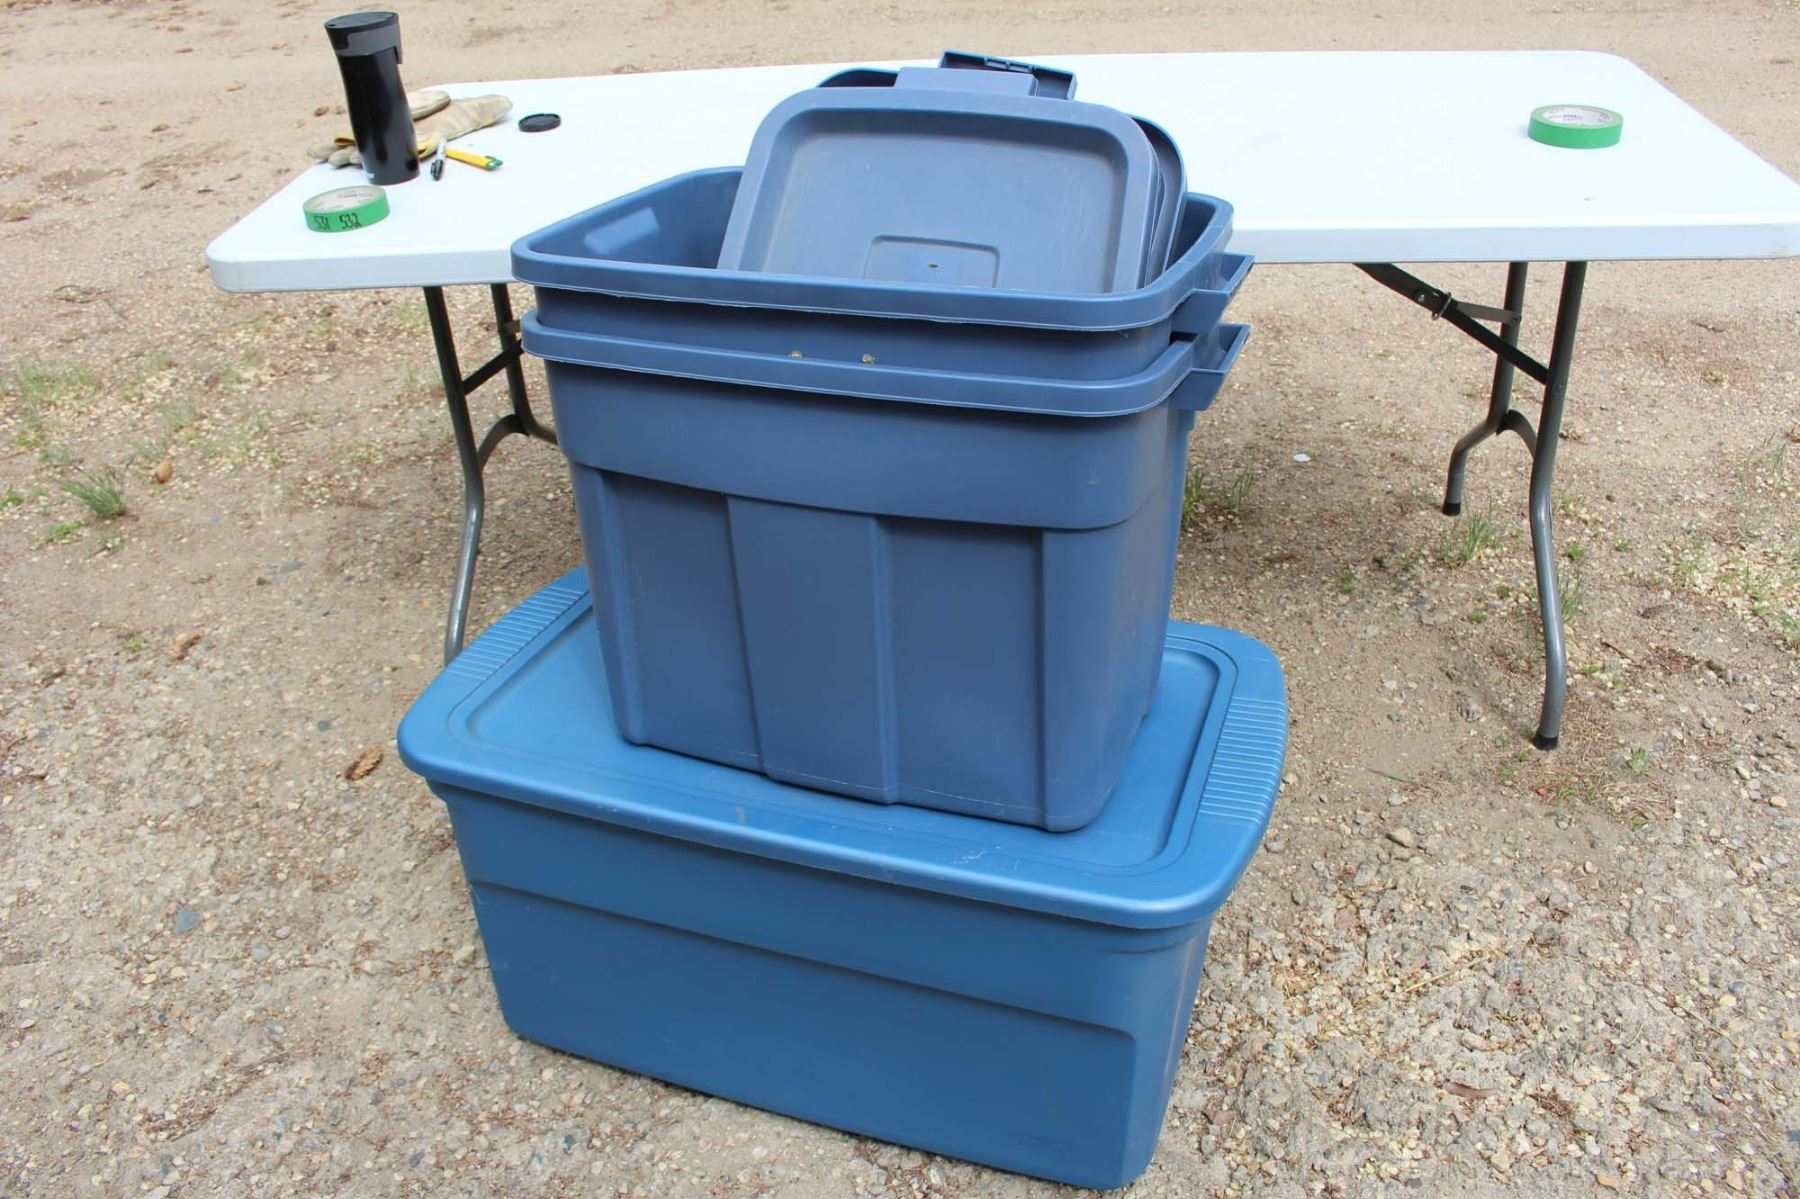 to rolling plastic s totes tub storage containers tubs large boxes rubbermaid black bins garage the bags